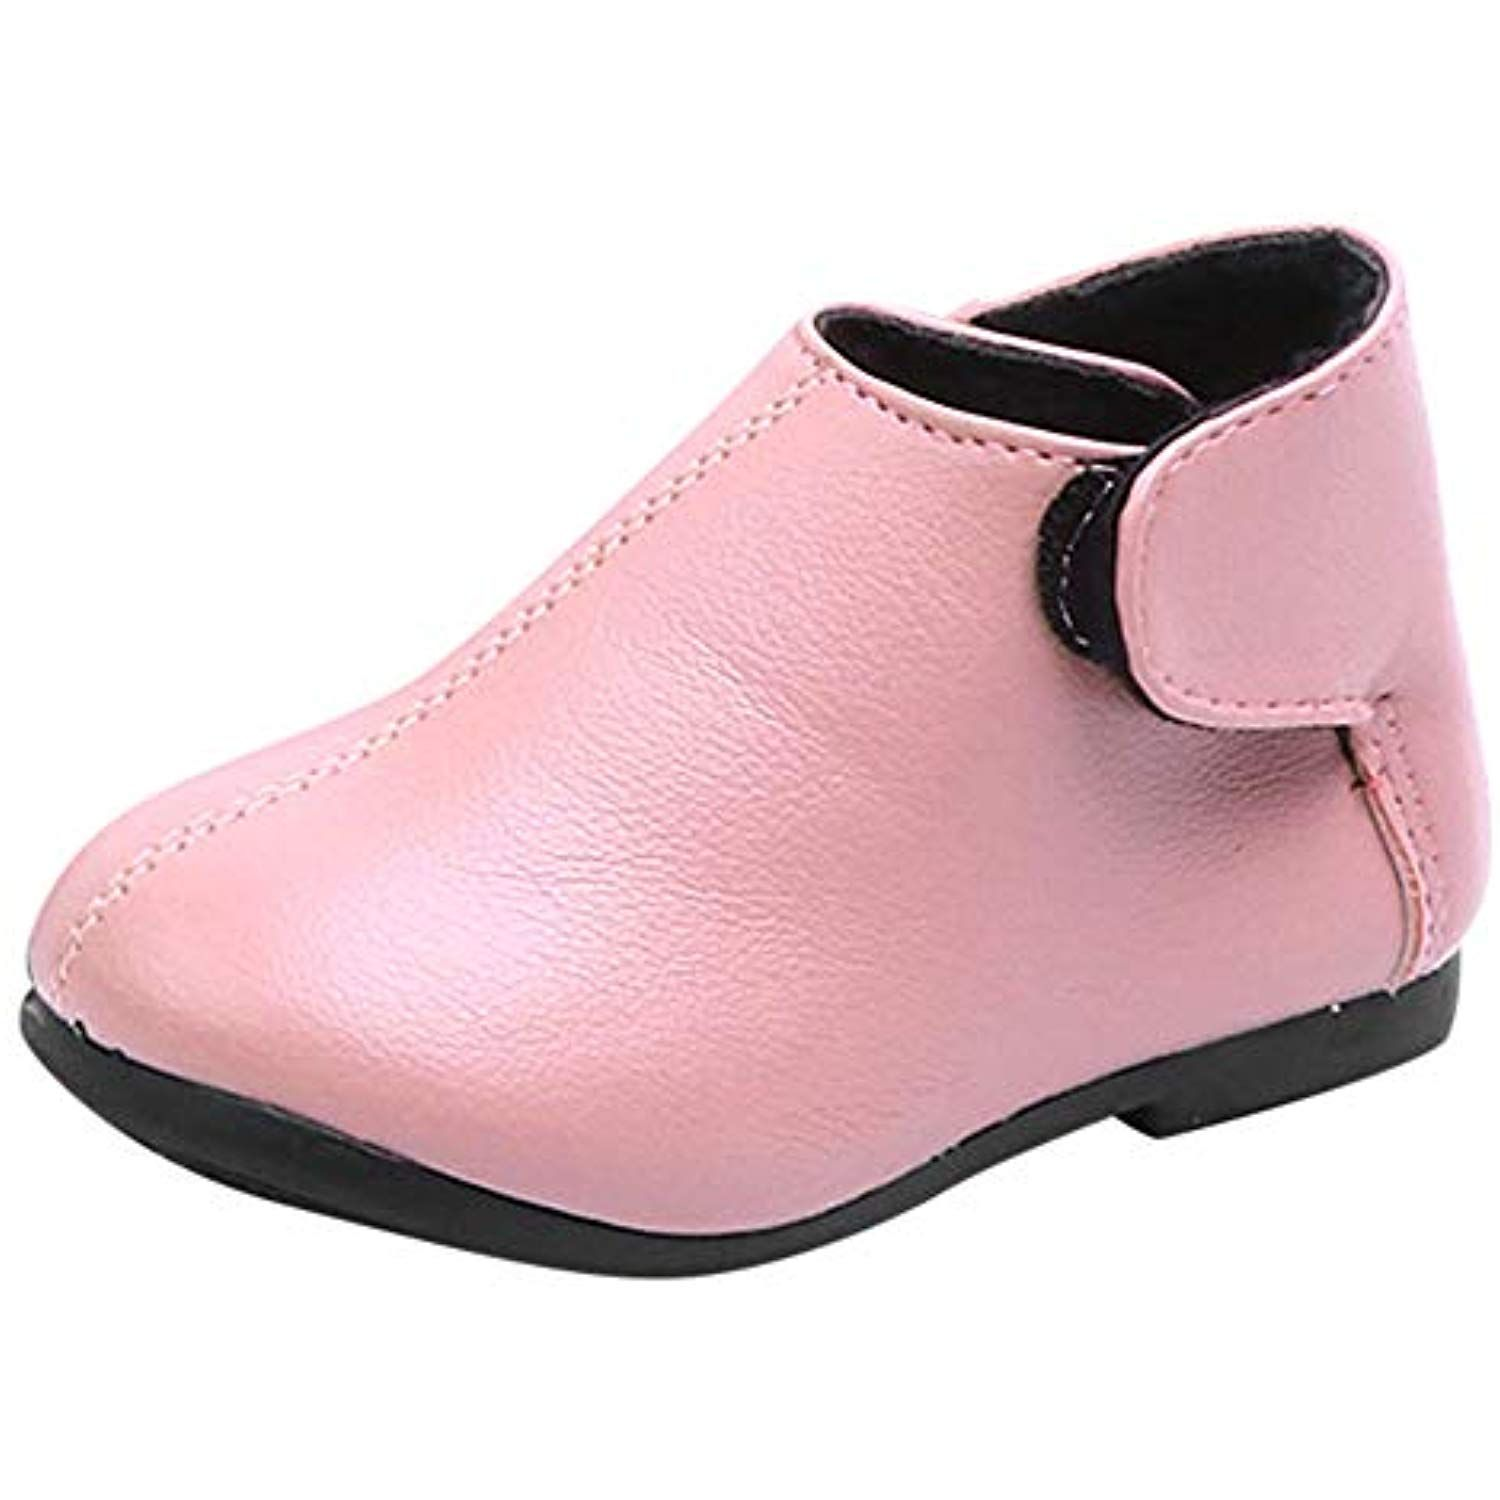 Baby Kids Girls Pink Leather Rubber Soft Sloe Easy Wear Outdoor Sneaker Boys Black Handsome Martin Shoes